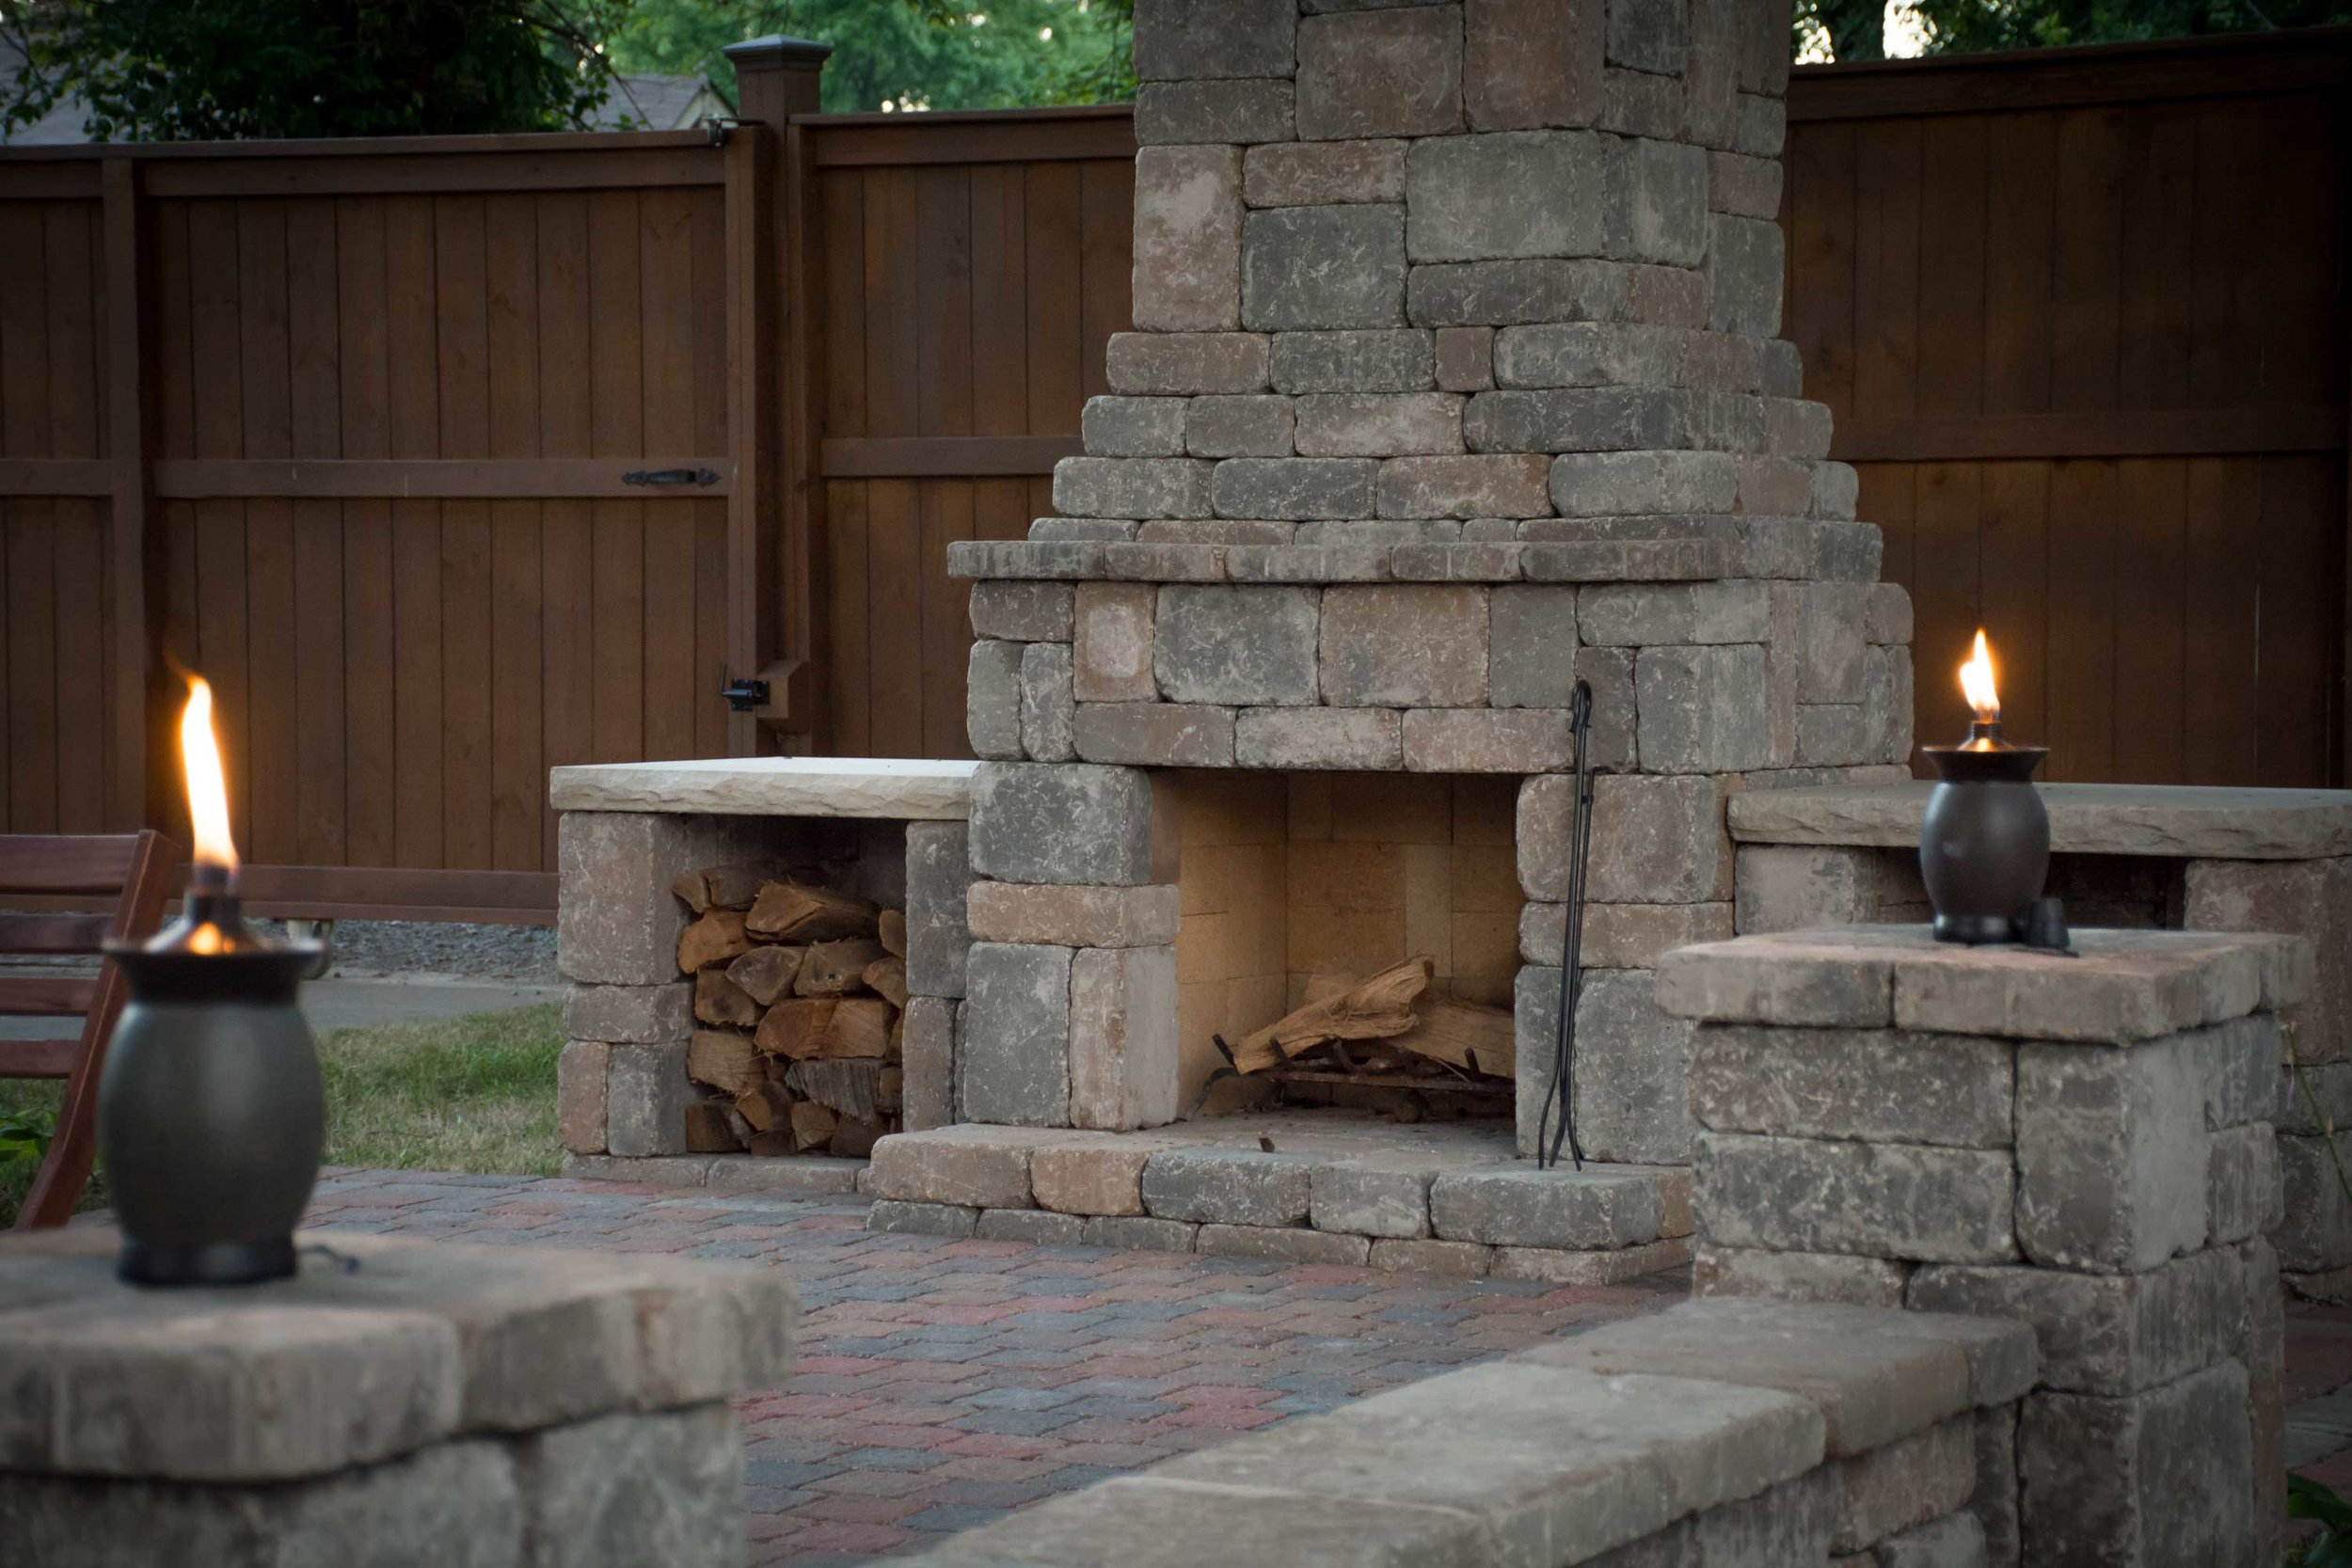 Fremont_fireplace_kit_twb.jpg